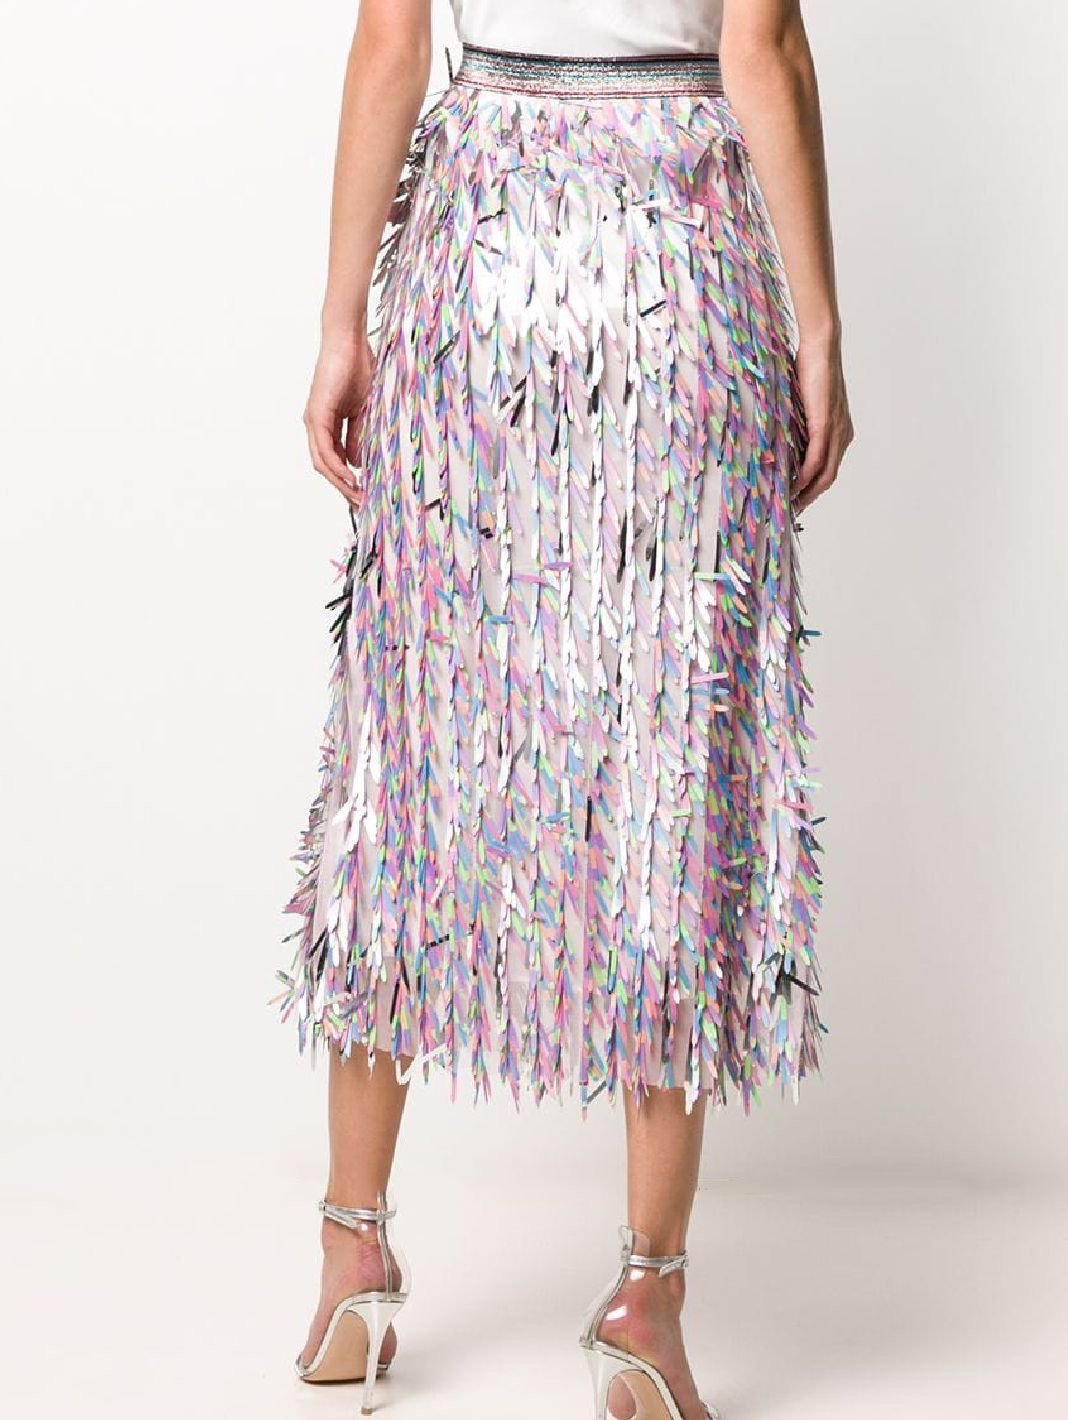 Stencil Cut Sequins Maxi Skirt - The Bobby Boga